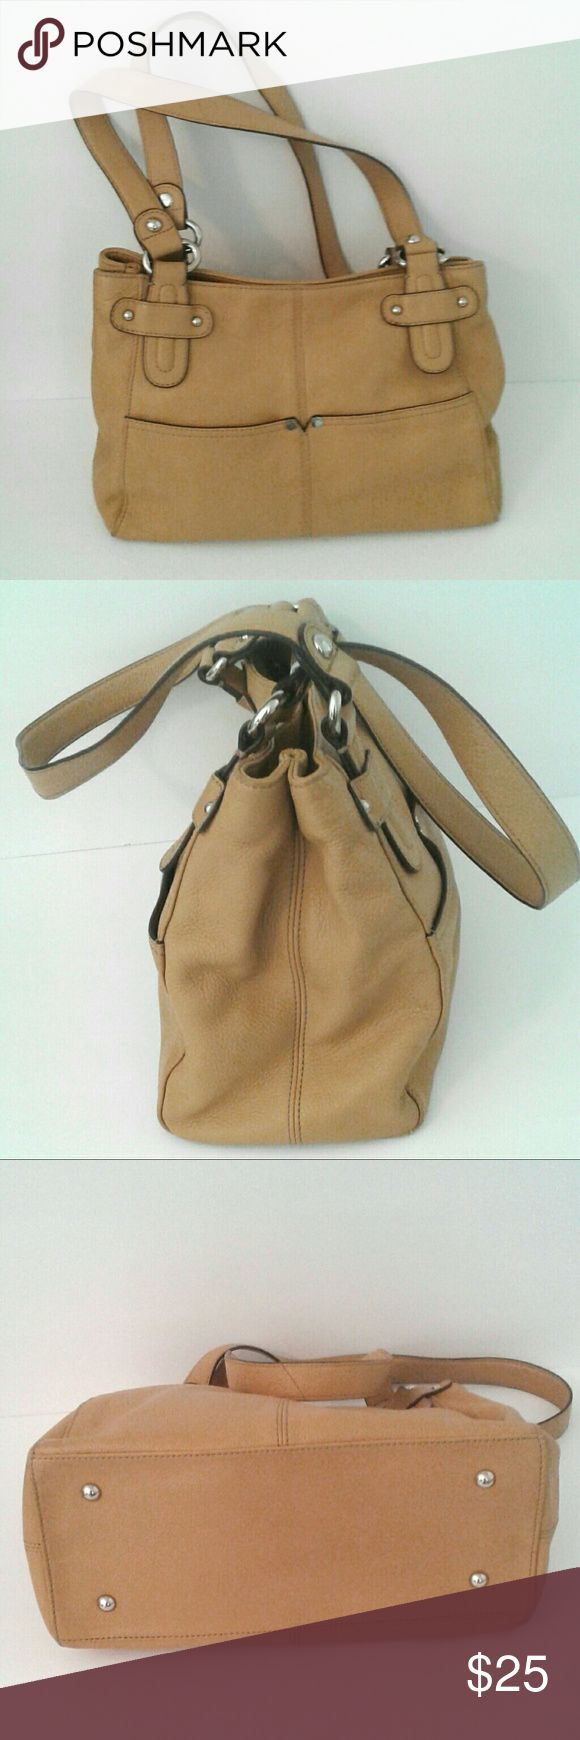 "Tignanello camel shoulder bag almost new Excellent used condition. Magnetic close open top. Two large interior compartments (one w/zip pocket) divided by center zipper section. Two outer pockets on both front and back. Hope that made sense.  Floor measures 5""x 12"",  height is 9"" and almost a 12"" strap drop.  Color is best match in image #6.  Stylish, roomy bag. No offers on this listing. Bundle & save 15%  Happy Poshing ; ) Tignanello Bags Shoulder Bags"